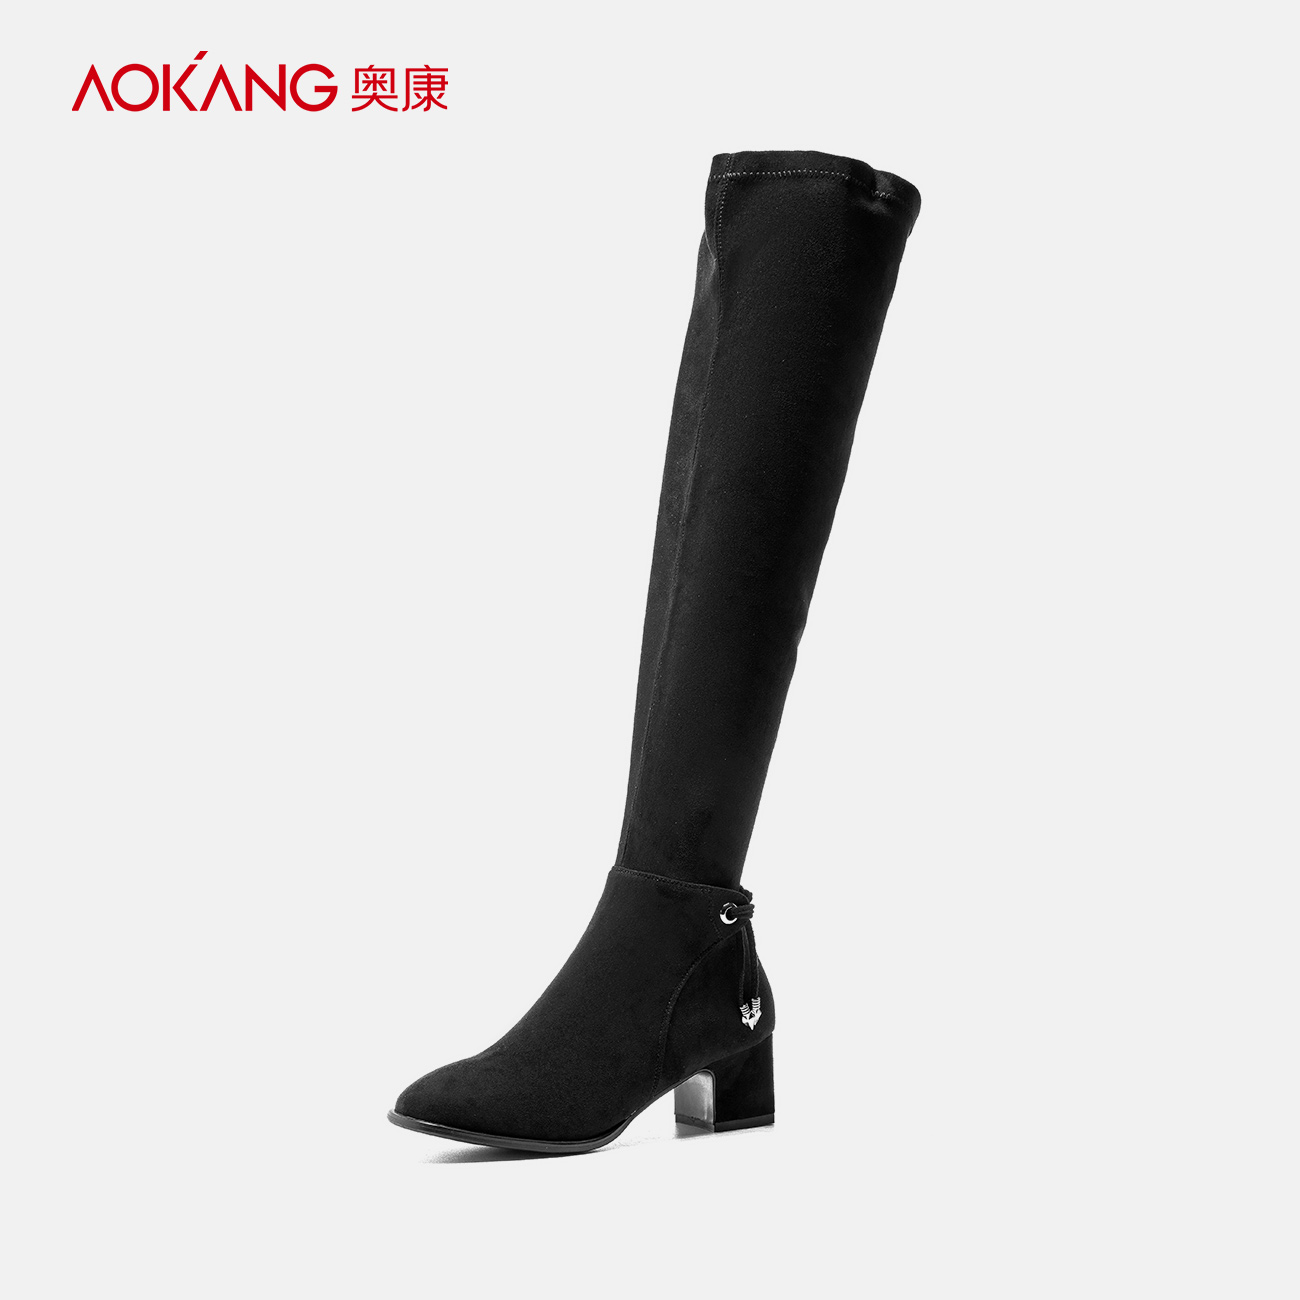 Aokang women's shoes in winter warmth trend round-toed thick-heeled Boots Fashionable long barrel over knee boots elastic boots